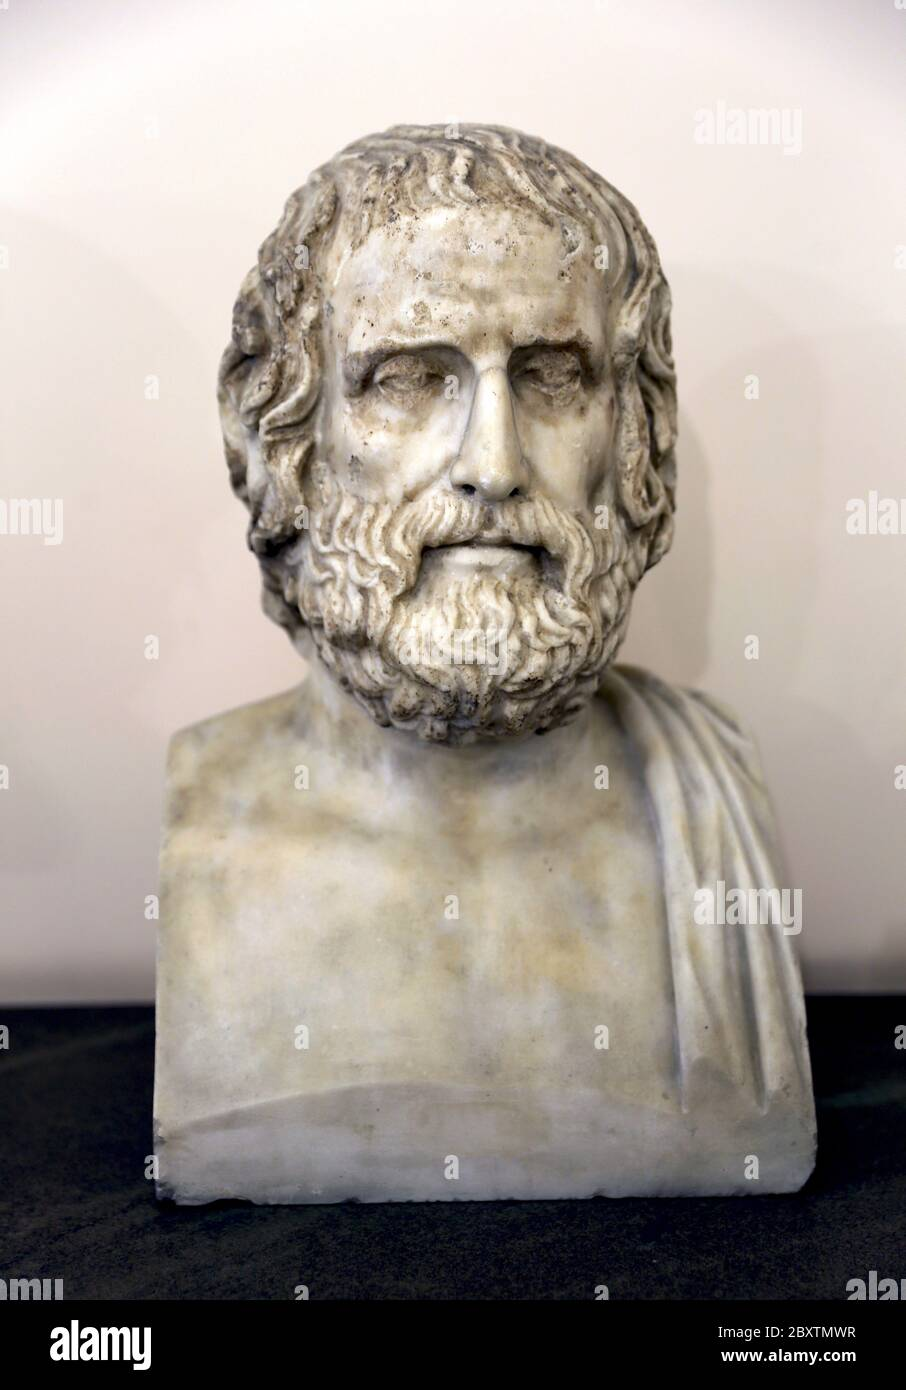 The tragic poet Euripides (c. 484 - 406 BC). Roman bust, 1st or 2nd cent AD. Copy of a Greek original. Naples Archaeological Museum. Italy. Stock Photo